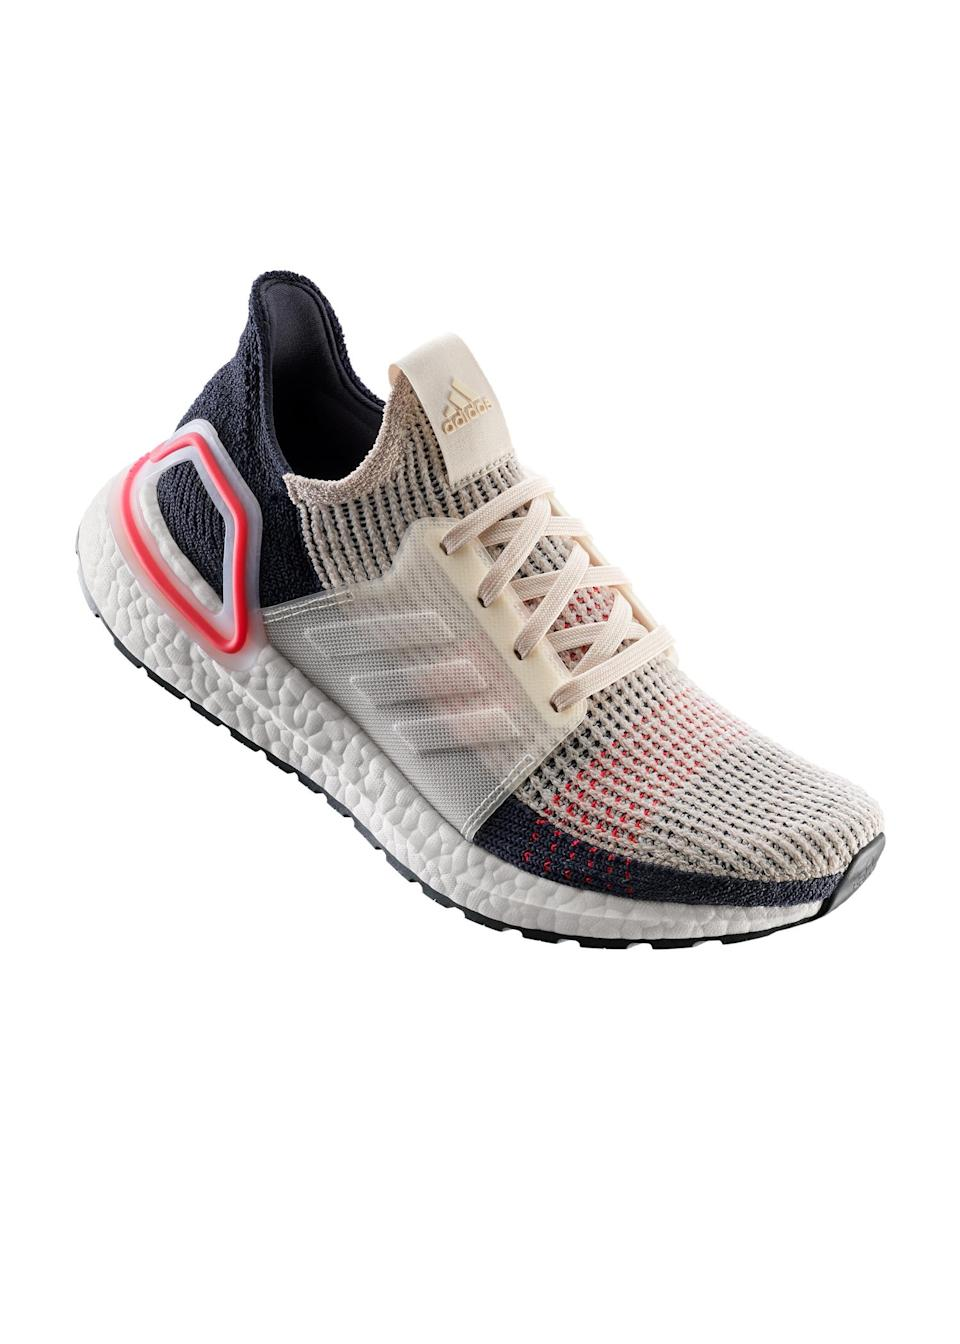 """<p>Name a greater excuse to hit the gym. Adidas has just launched the Ultraboost 19 and we're putting bets on them garnering cult blogger status in the coming weeks so make sure to hurry… <a href=""""https://www.adidas.co.uk/ultraboost-19-shoes/F35284.html"""" rel=""""nofollow noopener"""" target=""""_blank"""" data-ylk=""""slk:Shop now"""" class=""""link rapid-noclick-resp""""><em>Shop now</em></a>. </p>"""